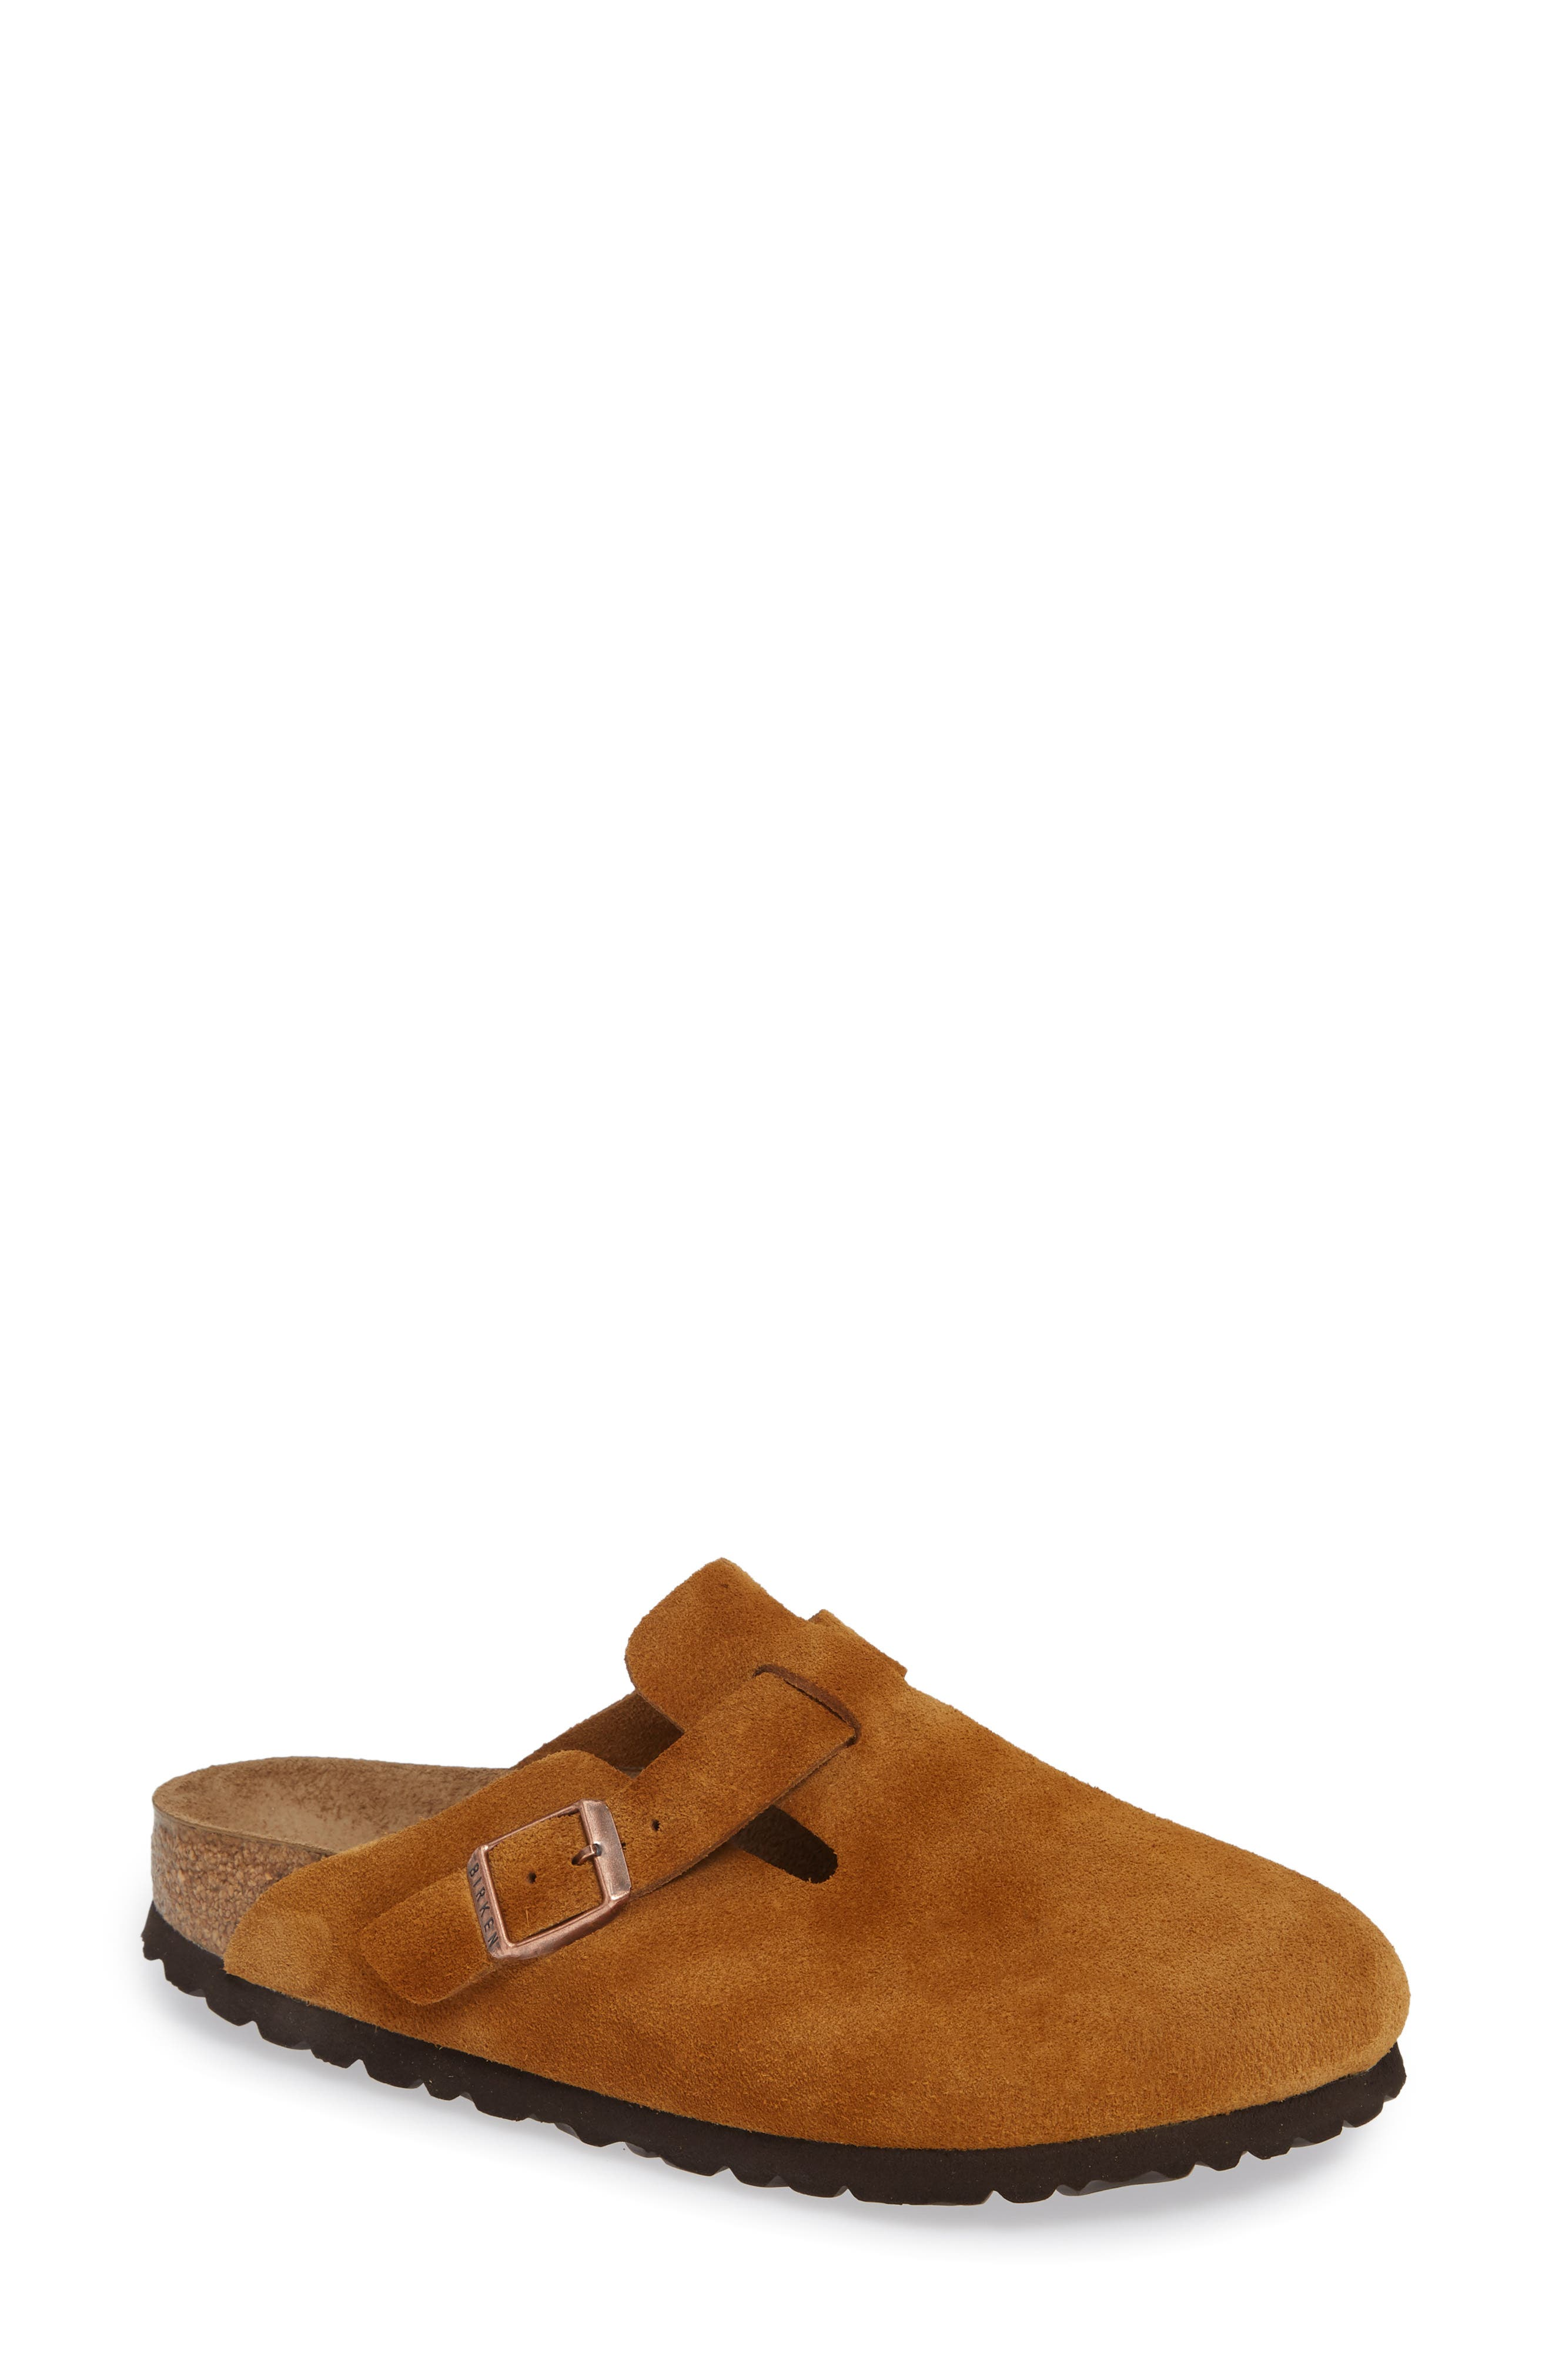 'Boston' Soft Footbed Clog,                             Main thumbnail 1, color,                             MINK SUEDE